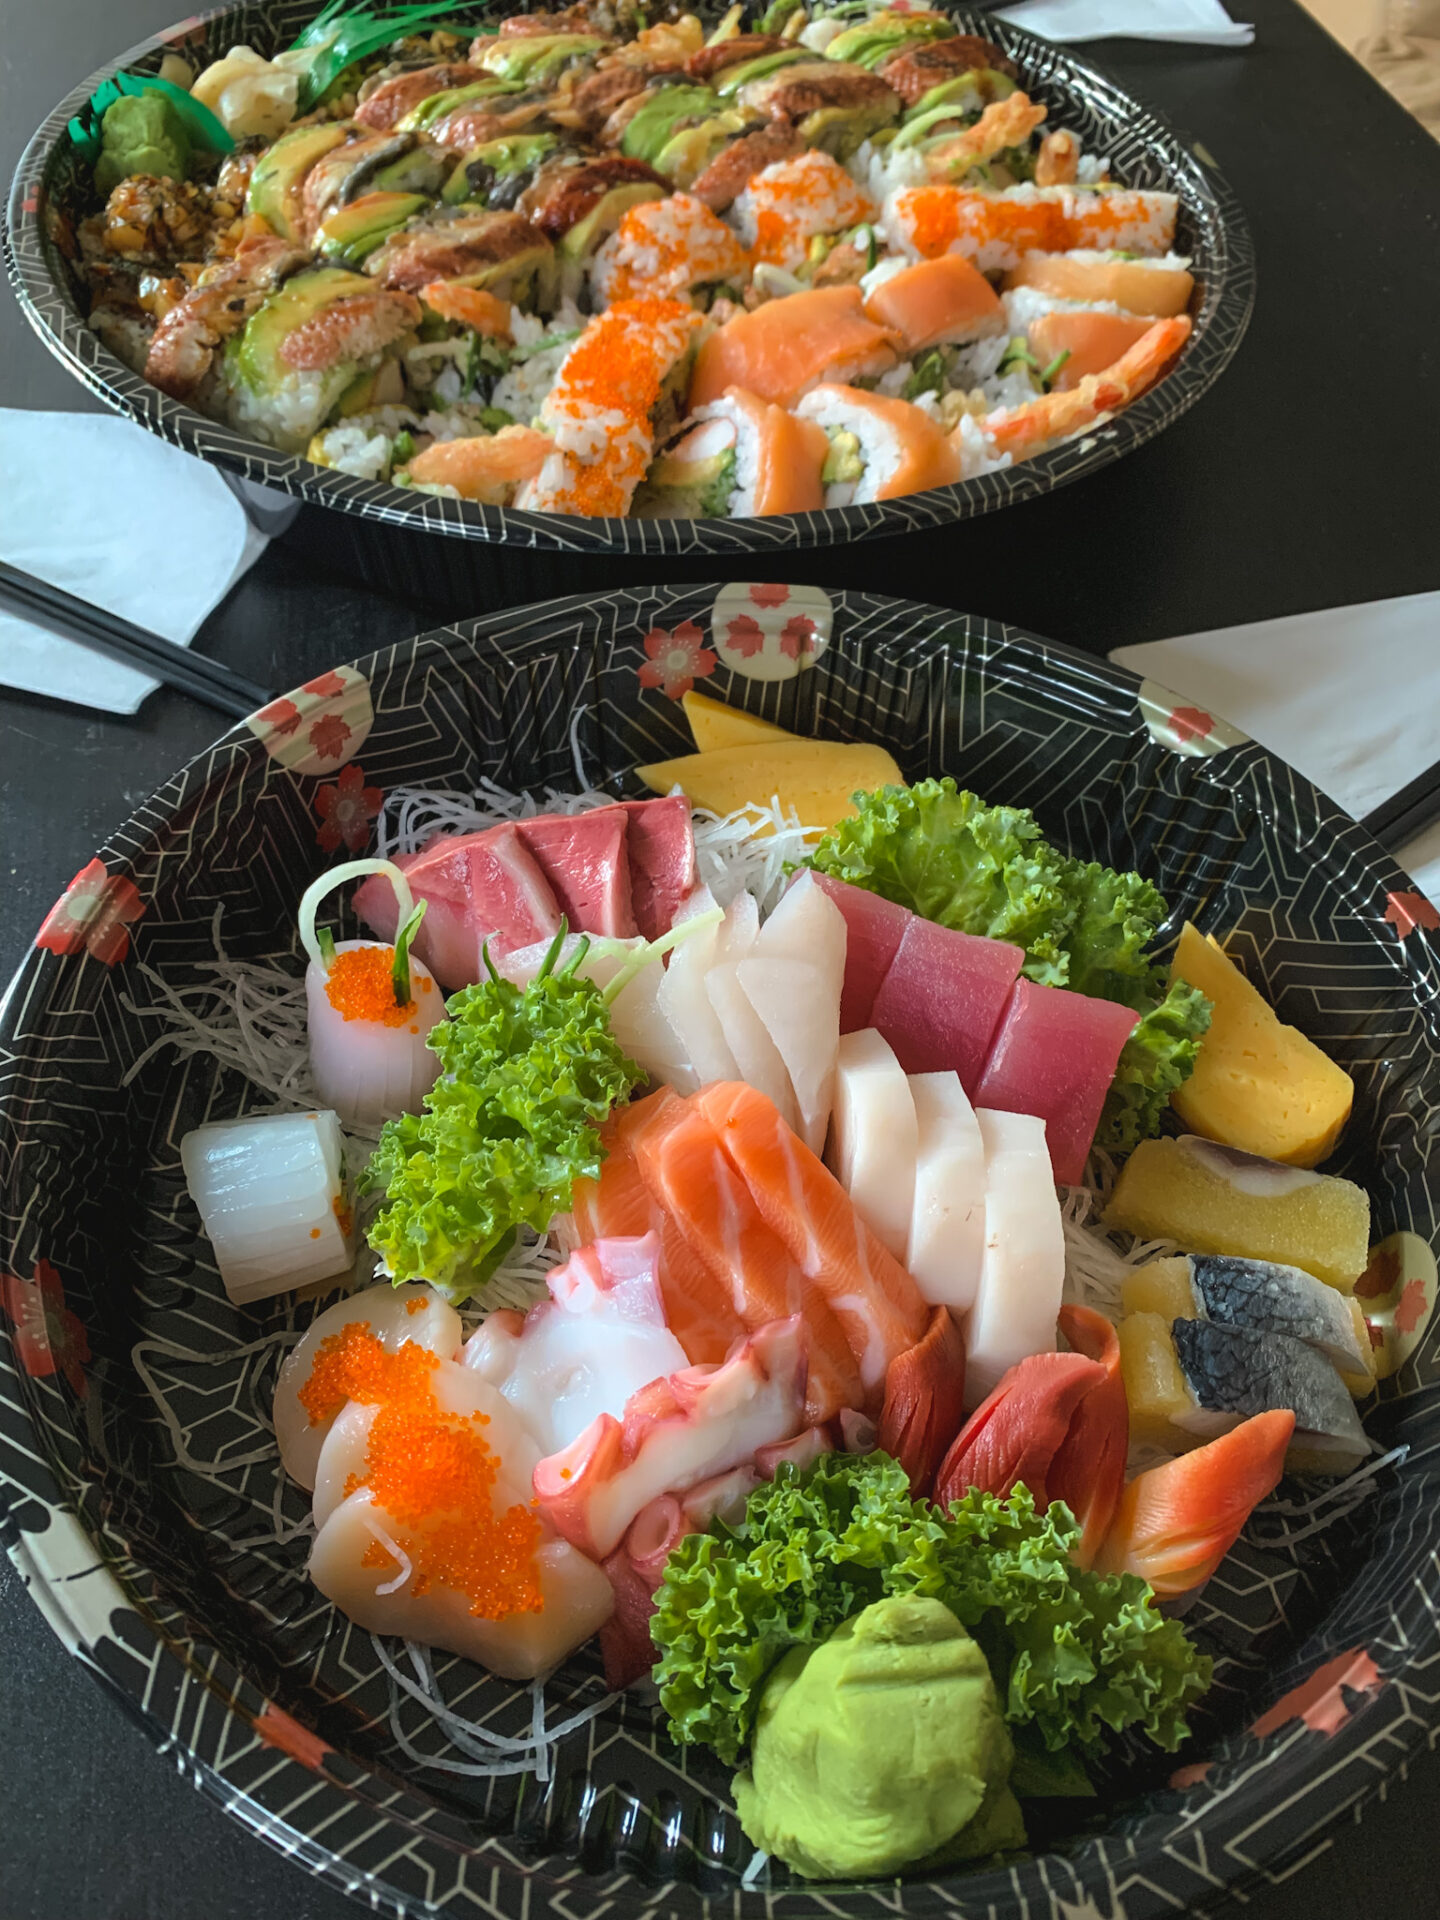 Ginza Sushi Express in Richmond Hill, Ontario